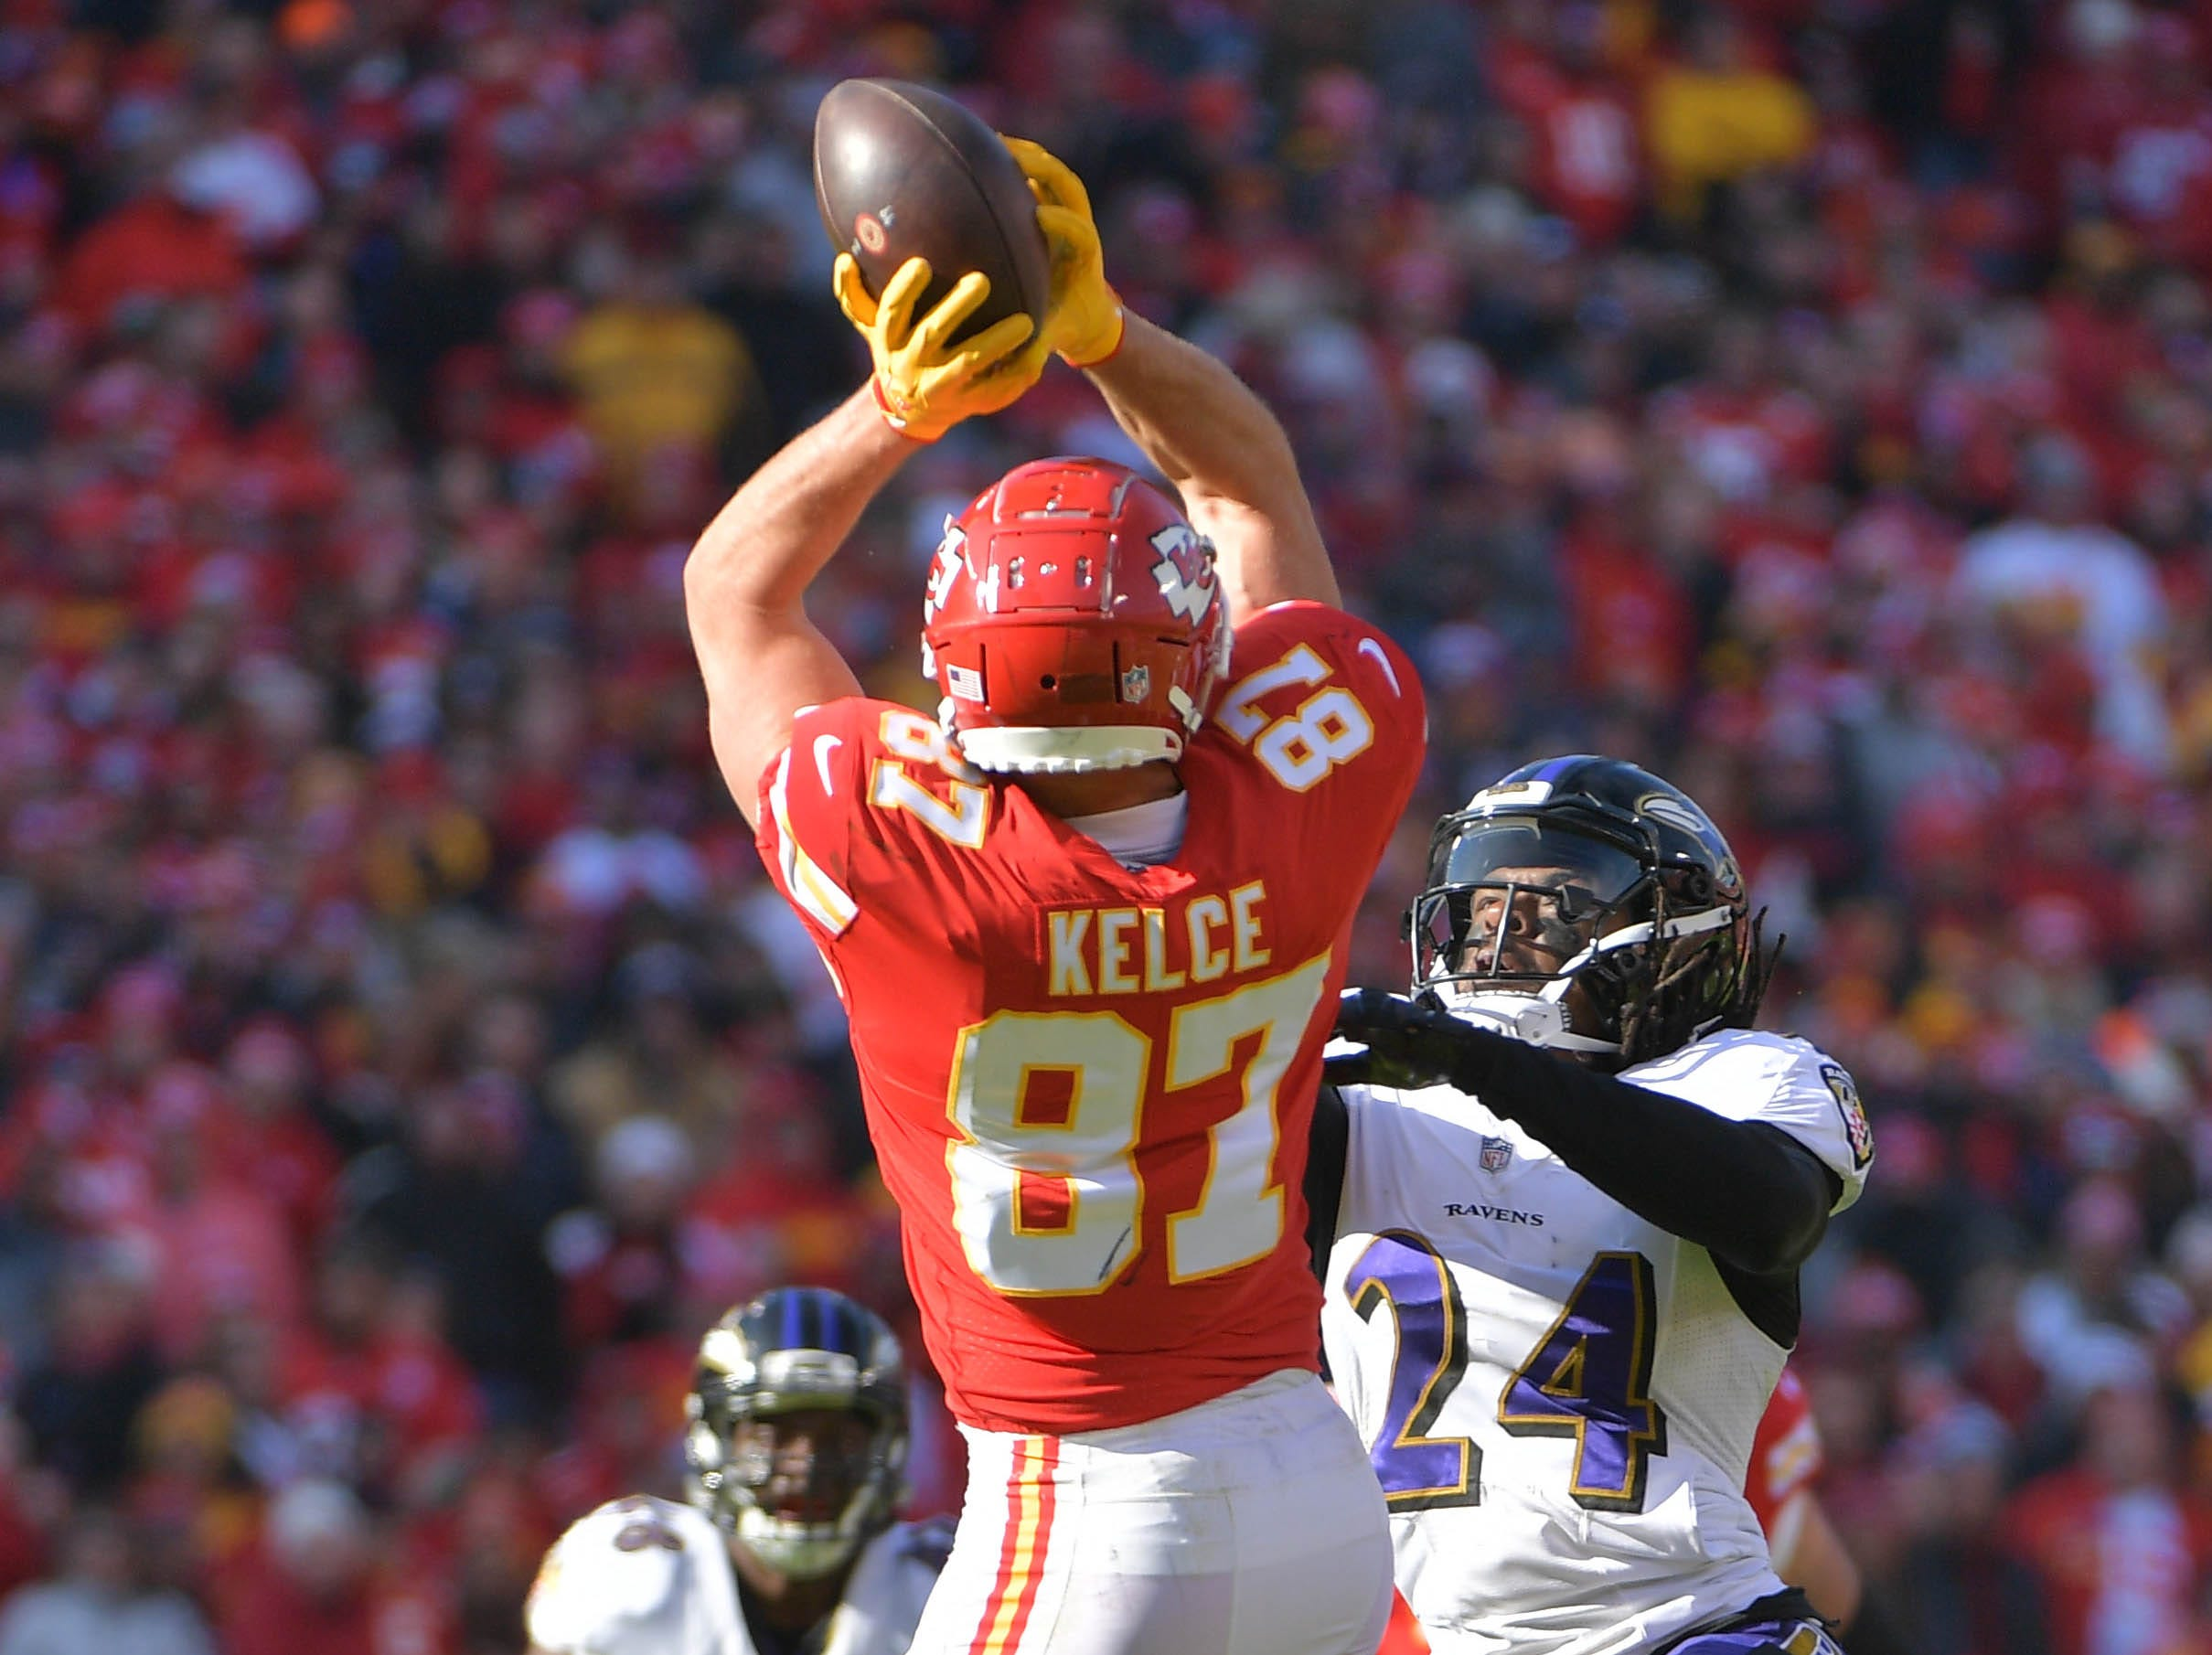 Chiefs tight end Travis Kelce makes a catch against the Ravens.